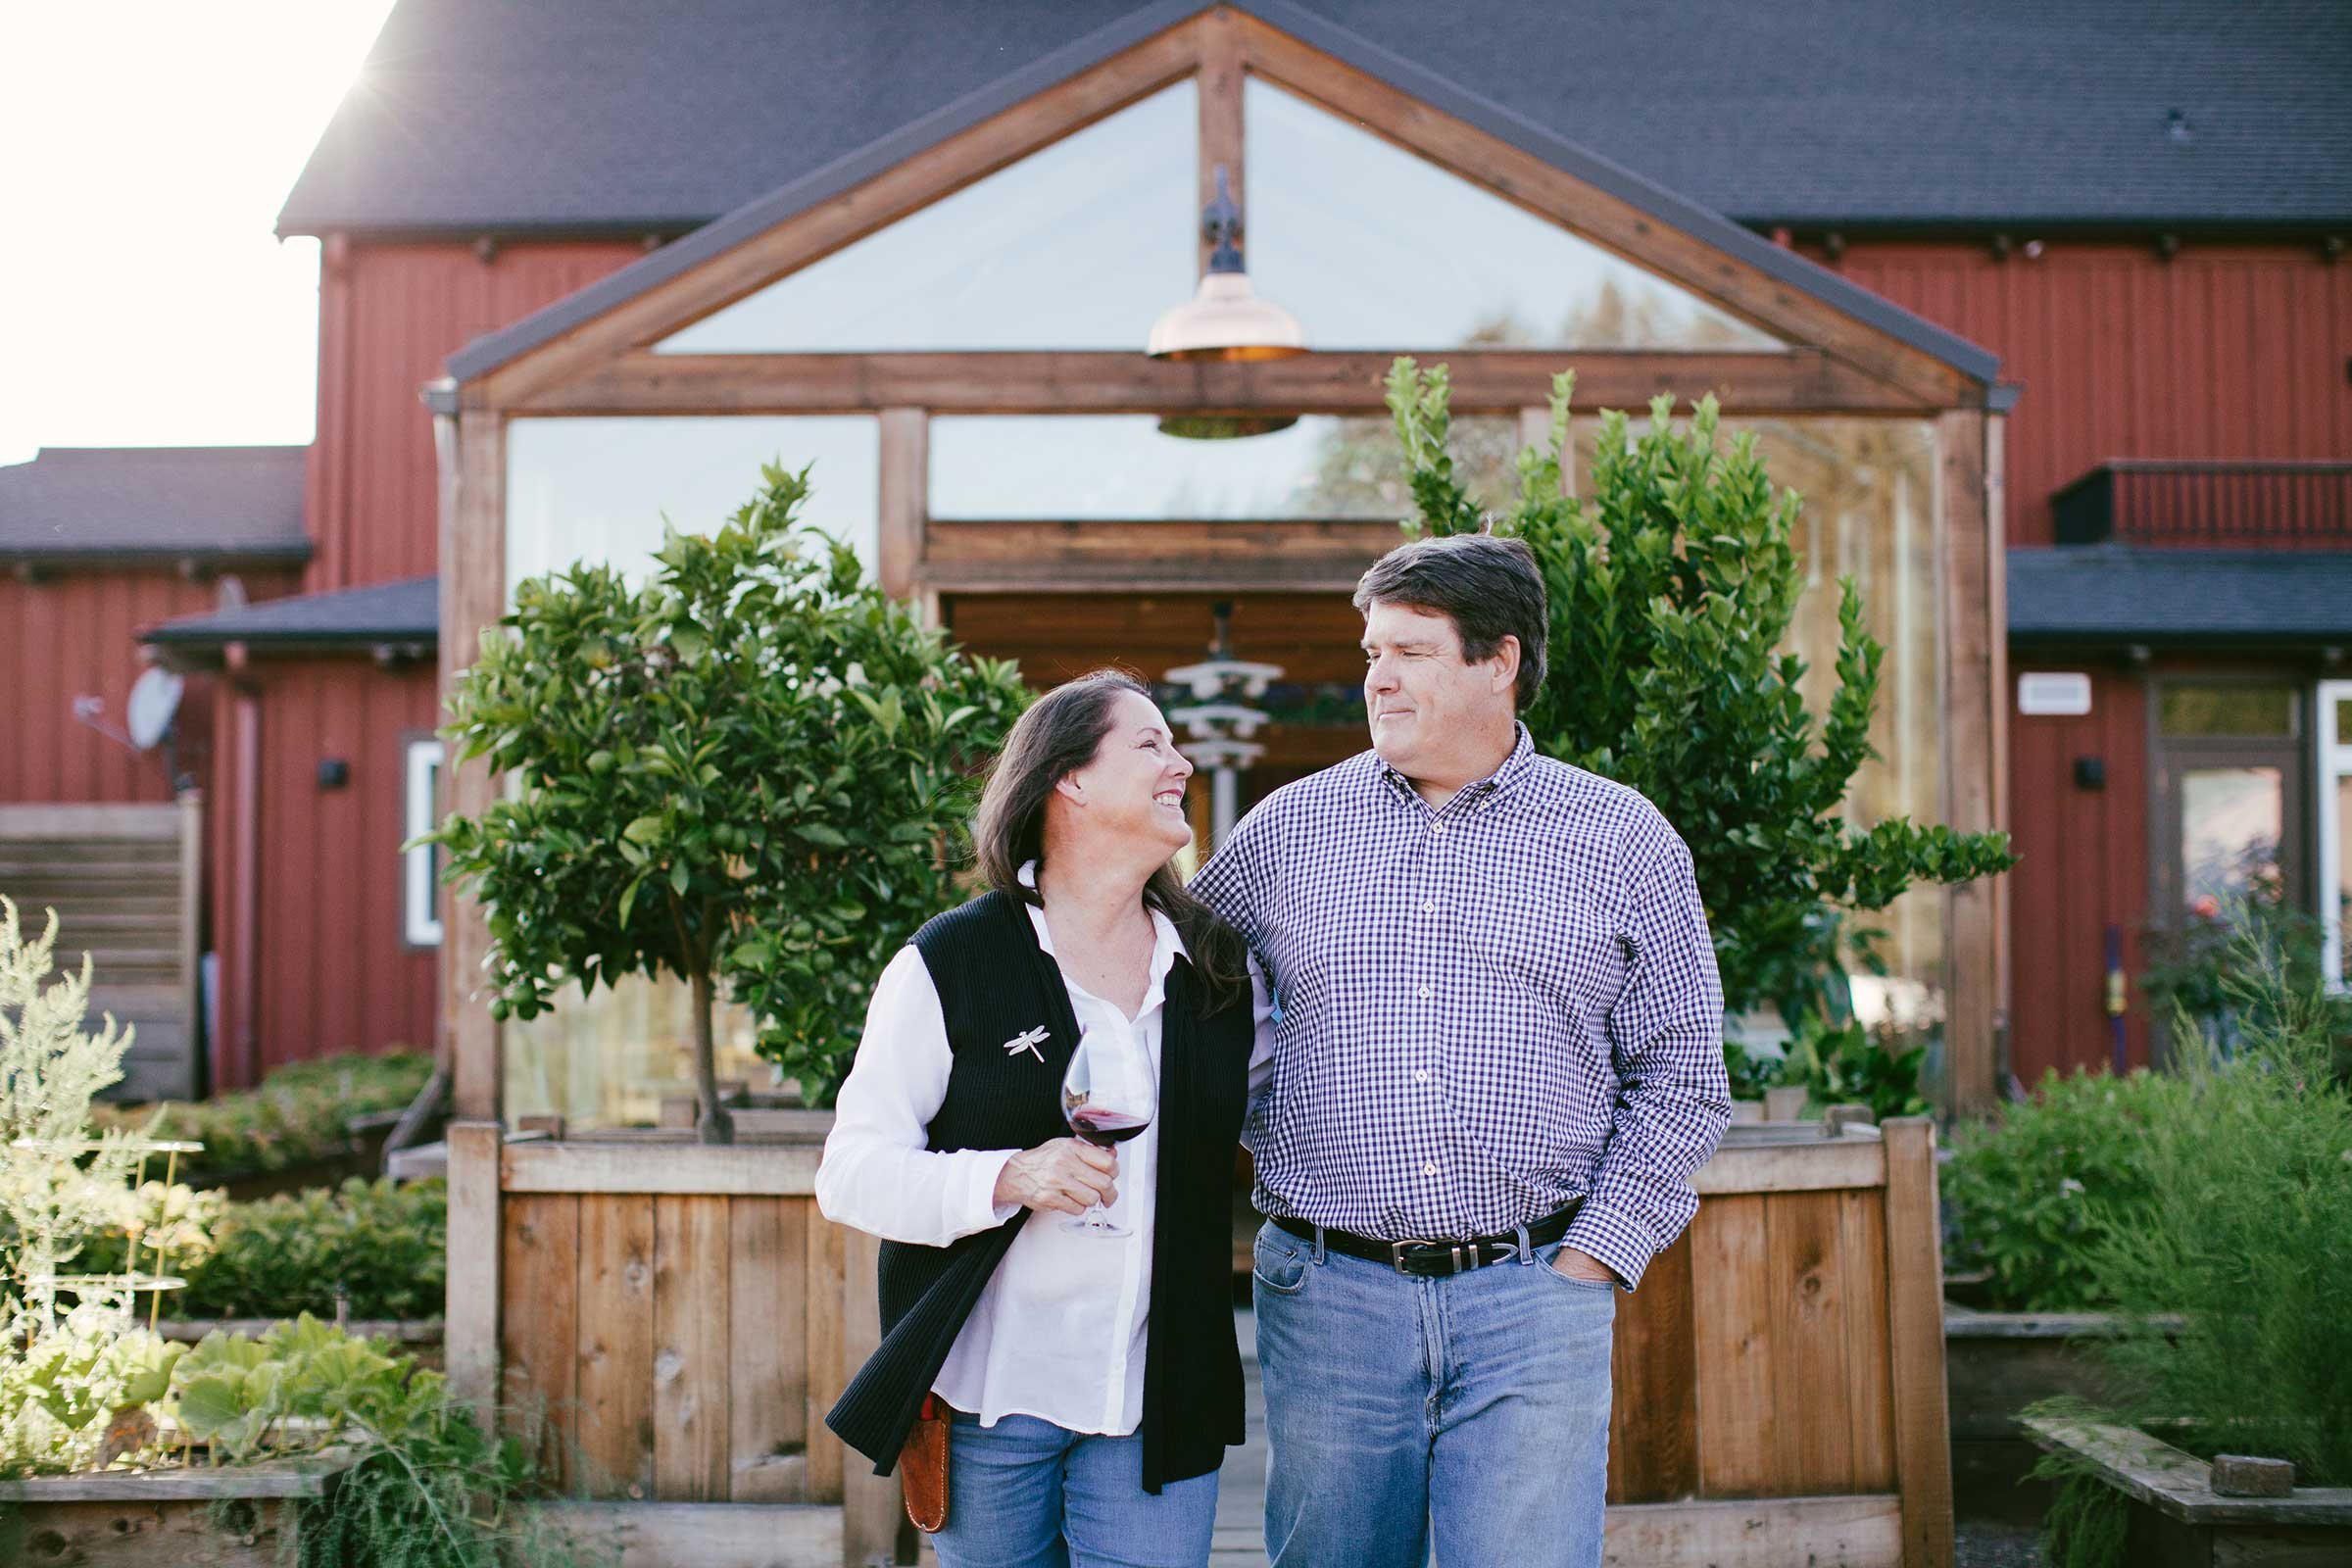 Two people standing in front of a red barn building